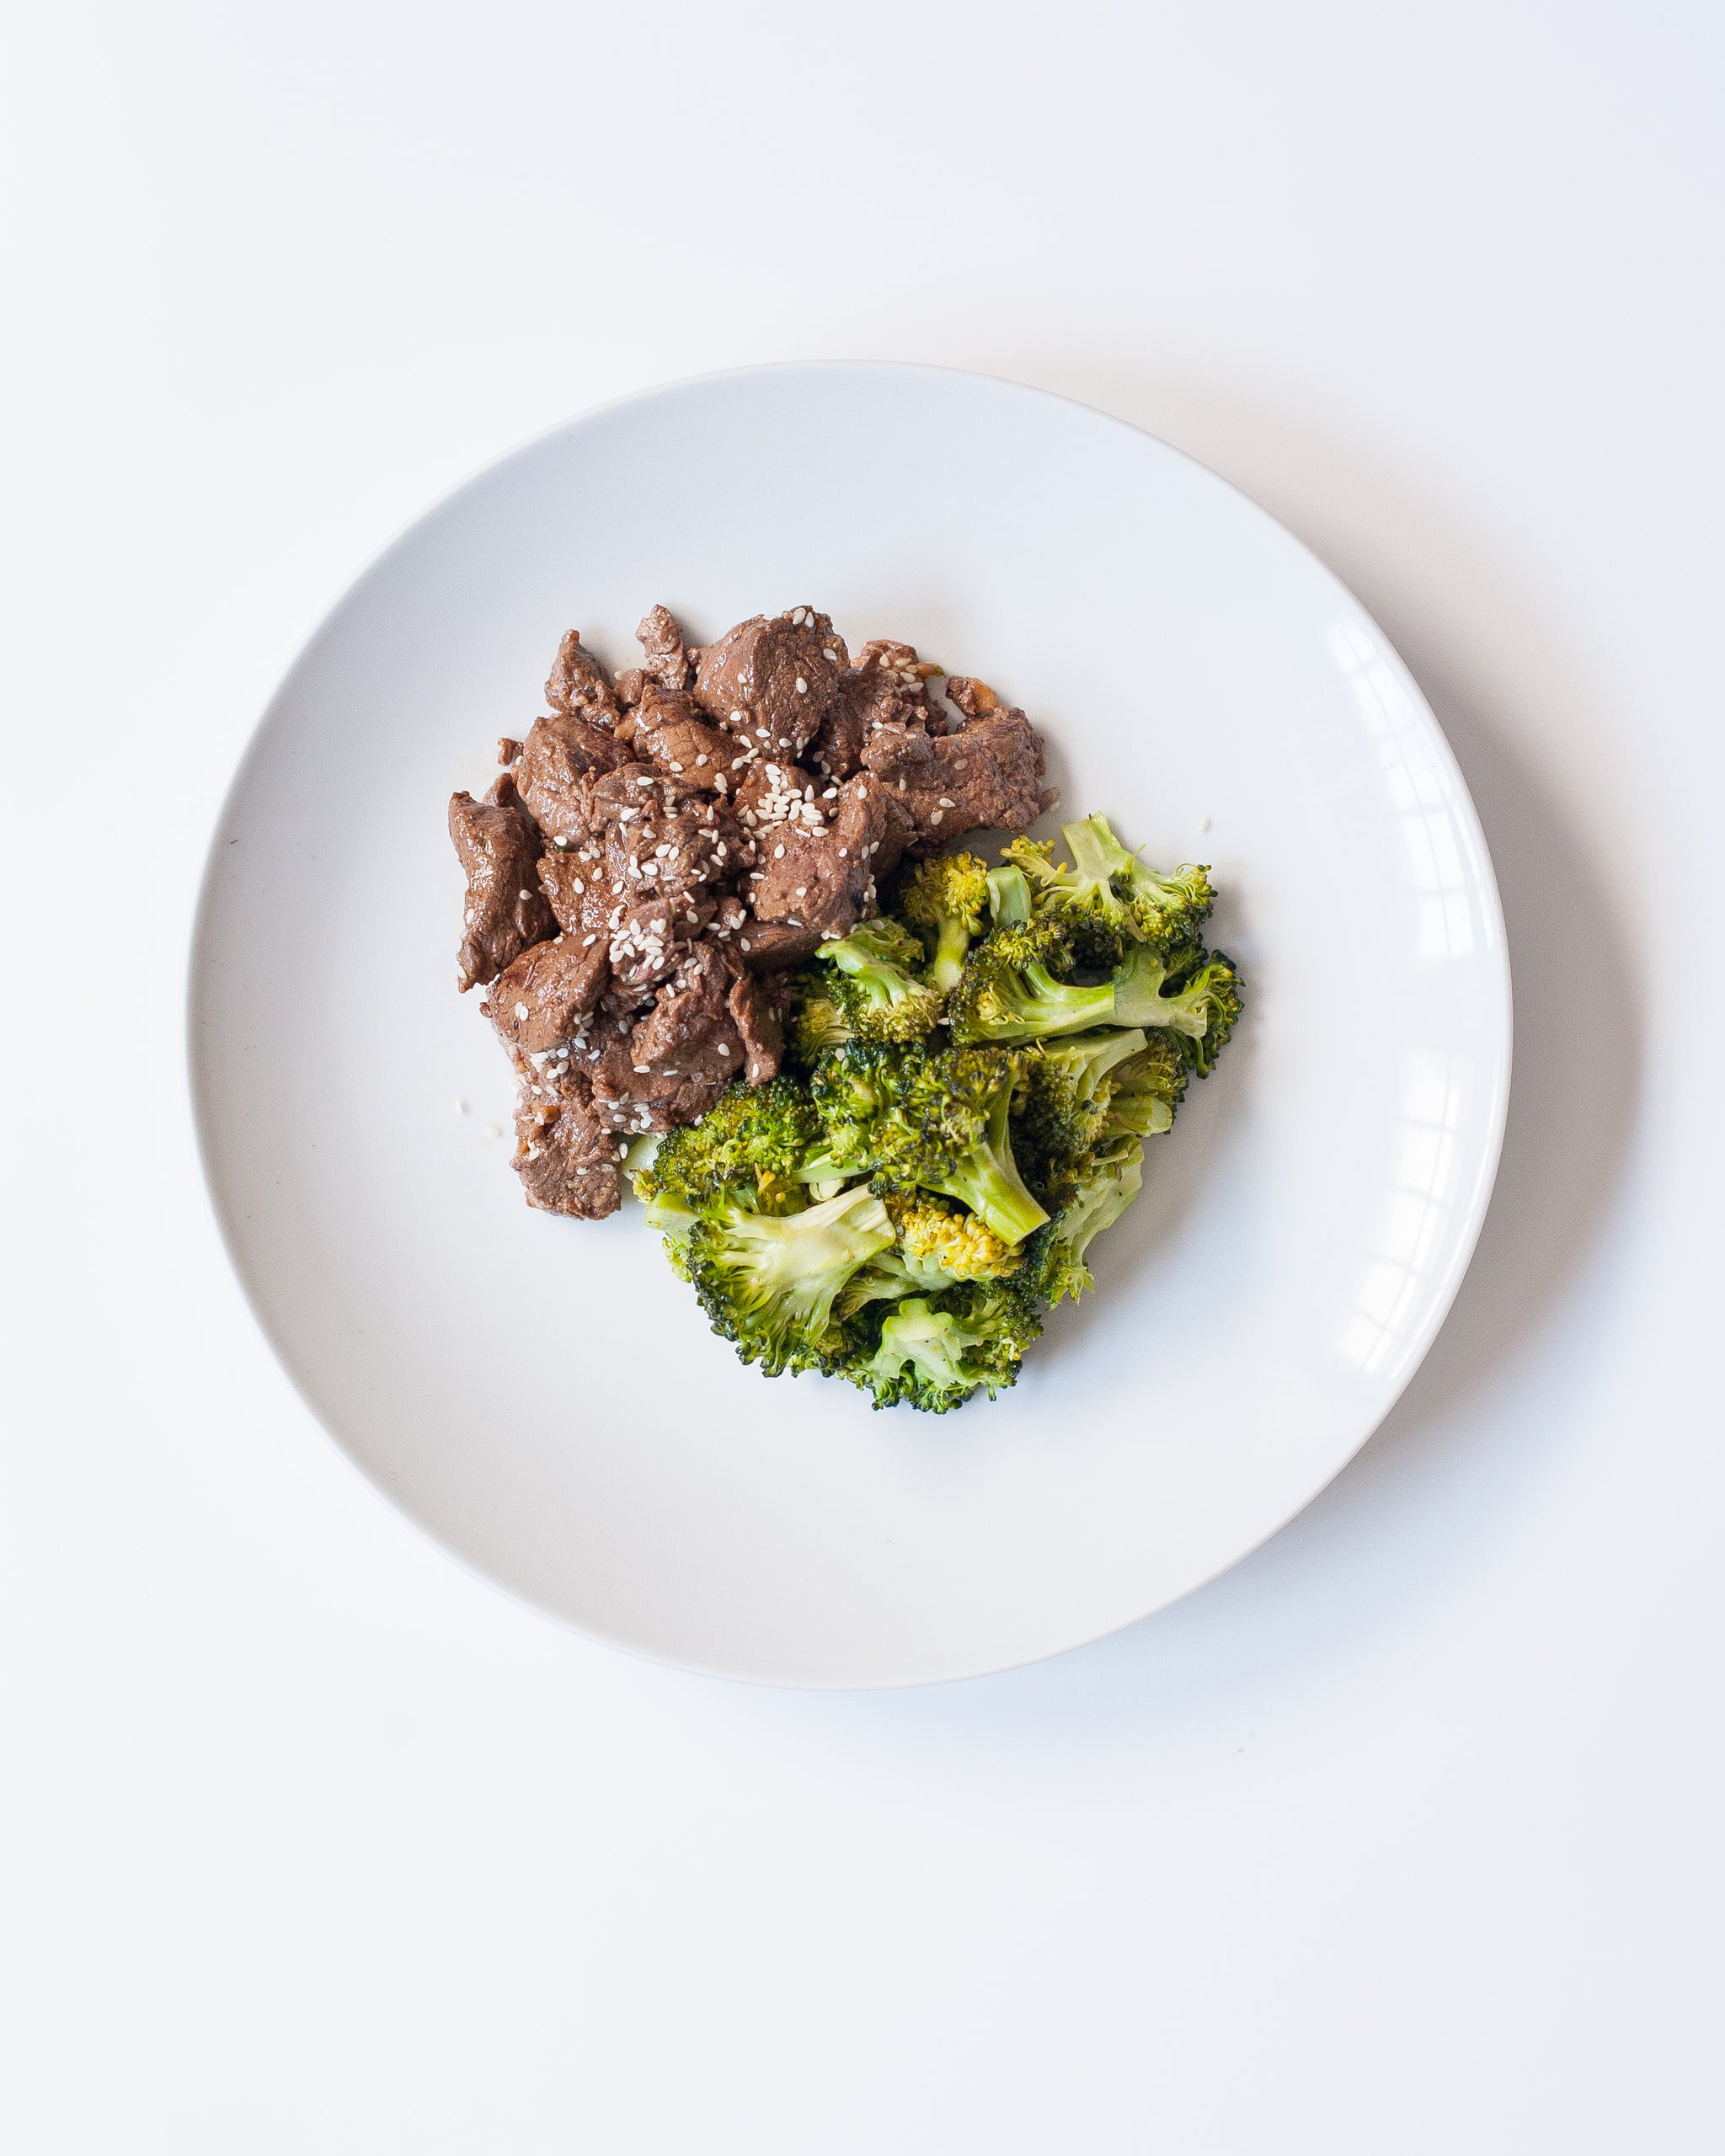 Paleo Beef and Broccoli Teriyaki (P) - Sauté